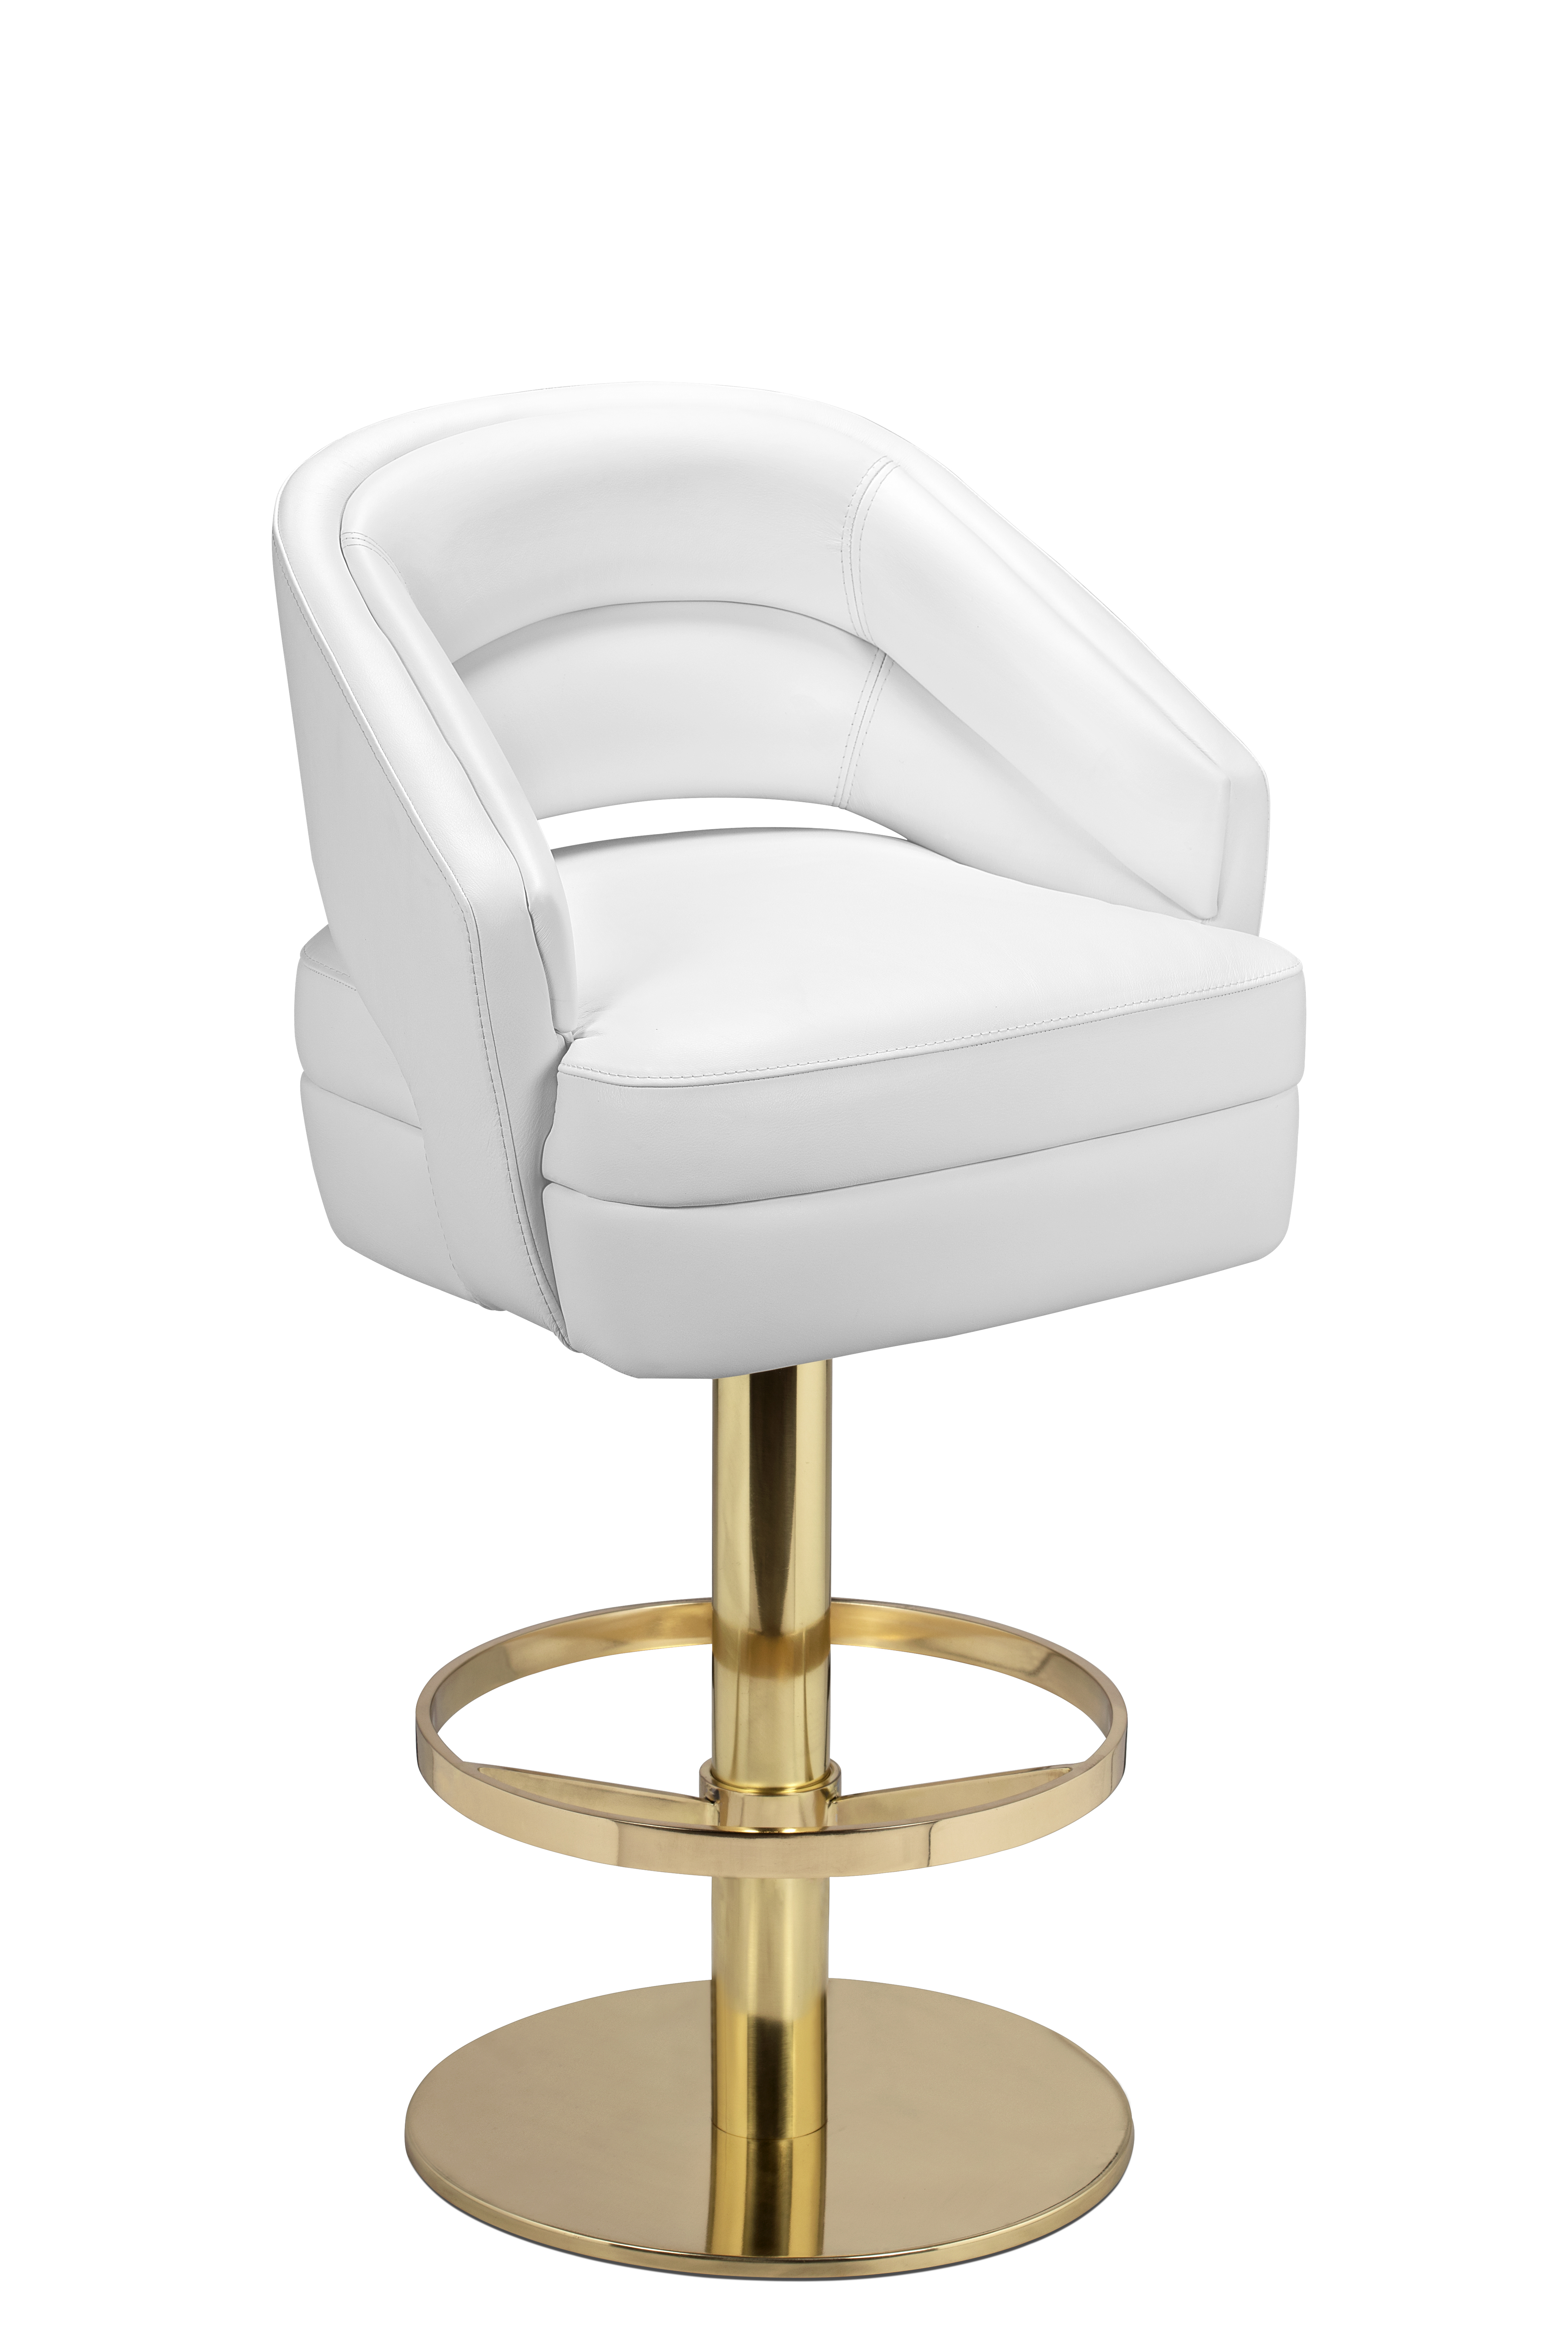 If You Re Feeling Fancy This White Leather Mid Century Bar Chair Is The Perfect Fit For A Swivel That Can Be 100 Customized To Your